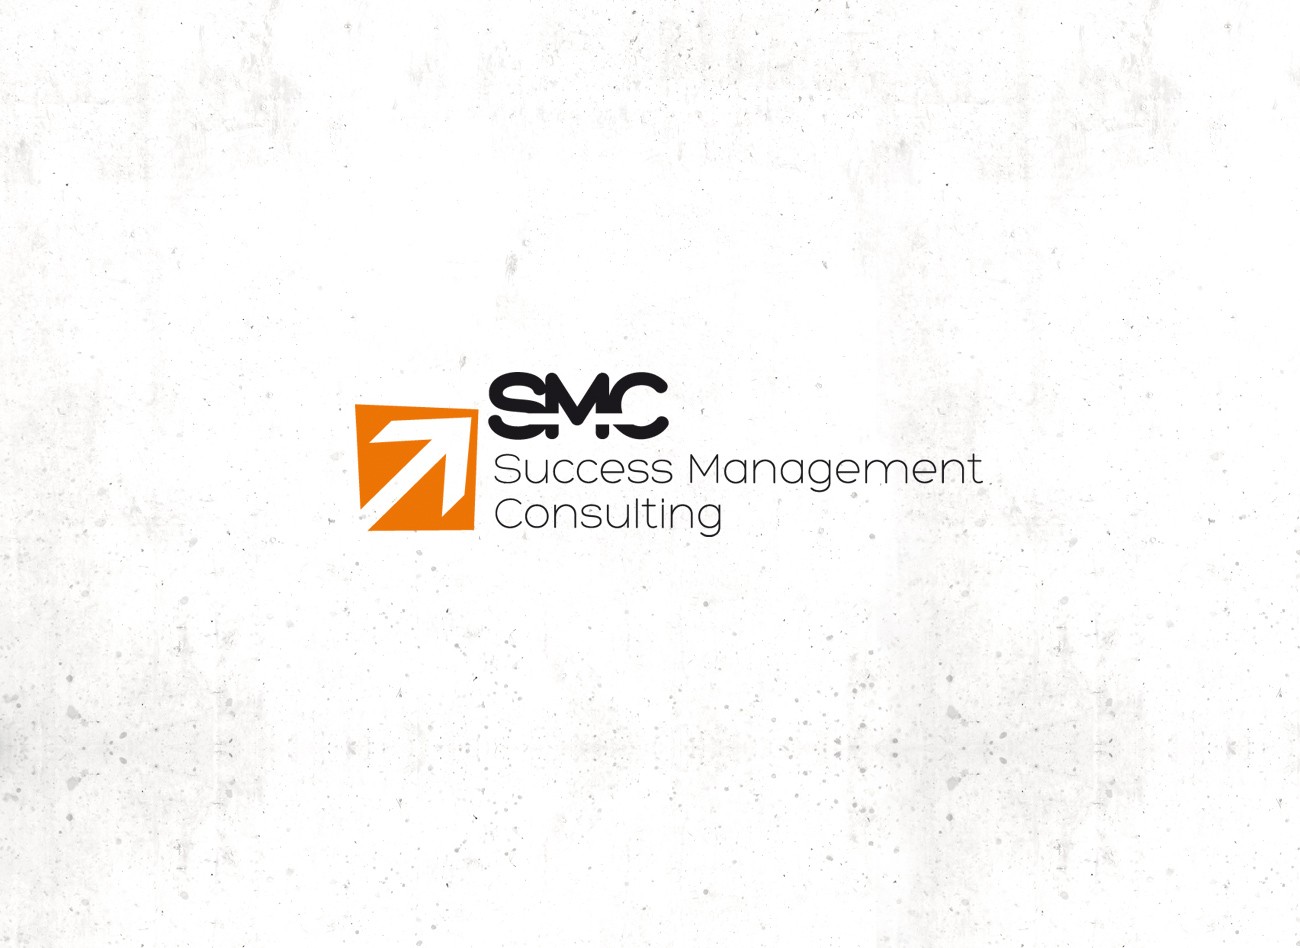 Logogestaltung / SMC Success Management Consulting